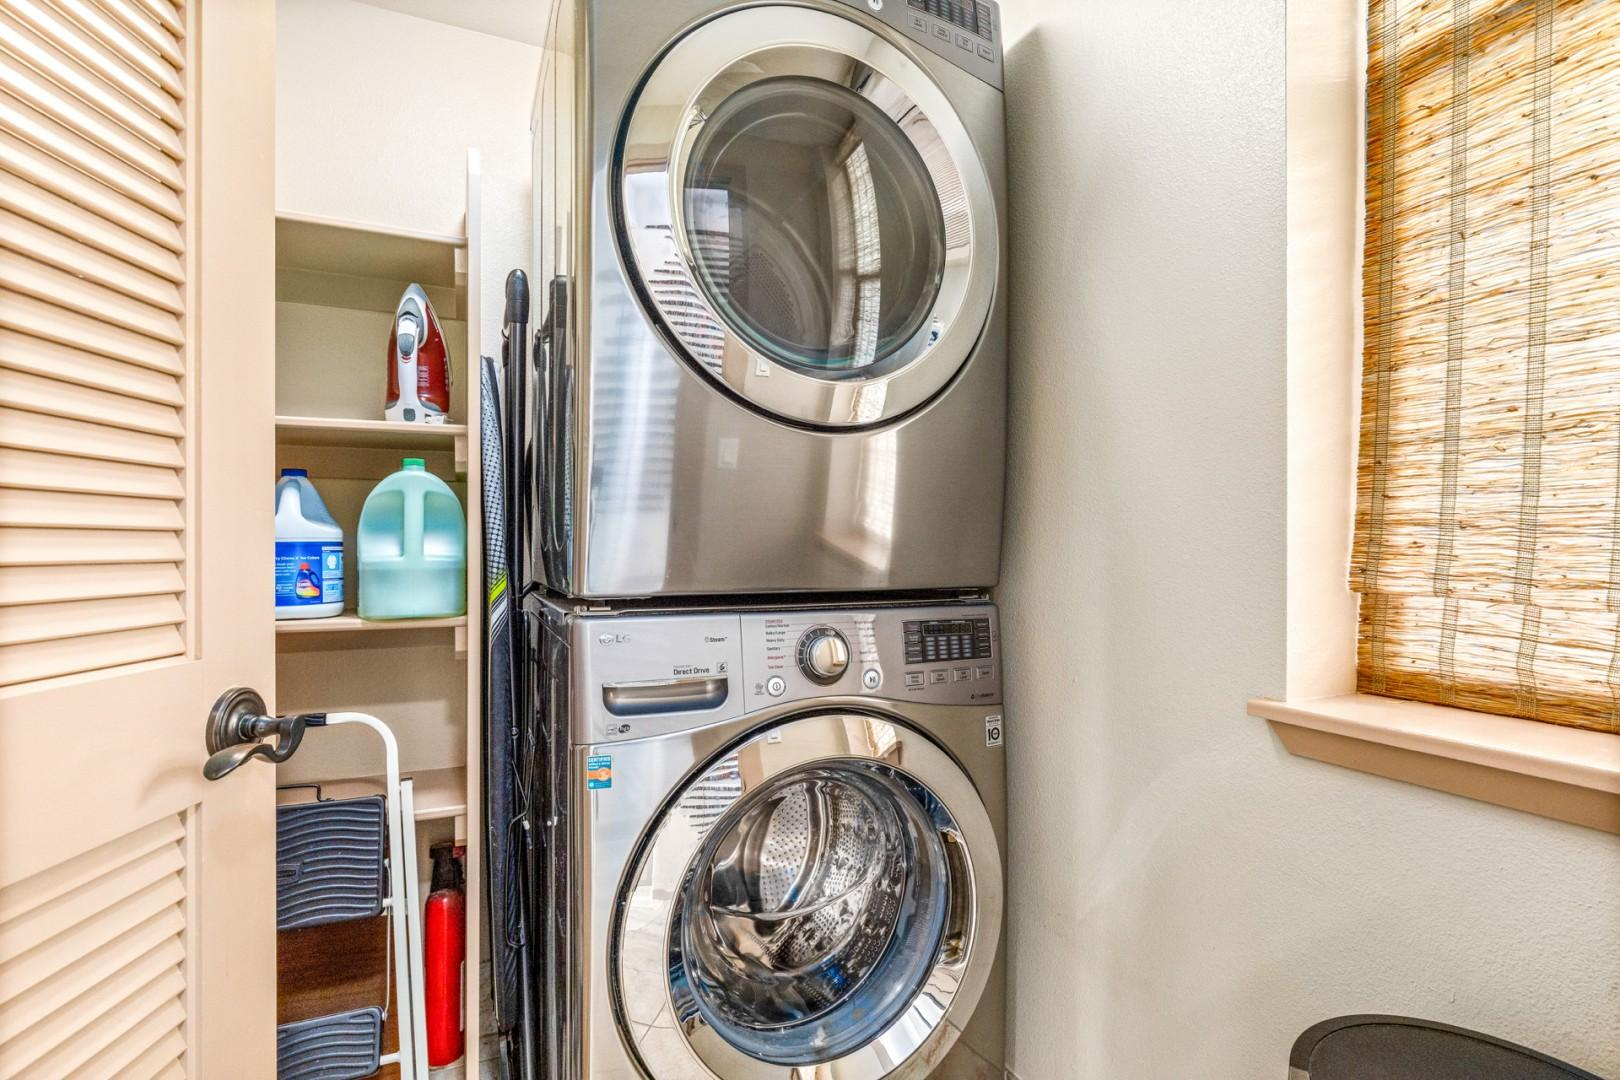 Dedicated laundry room with oversized washer and dryer and supplied detergent.